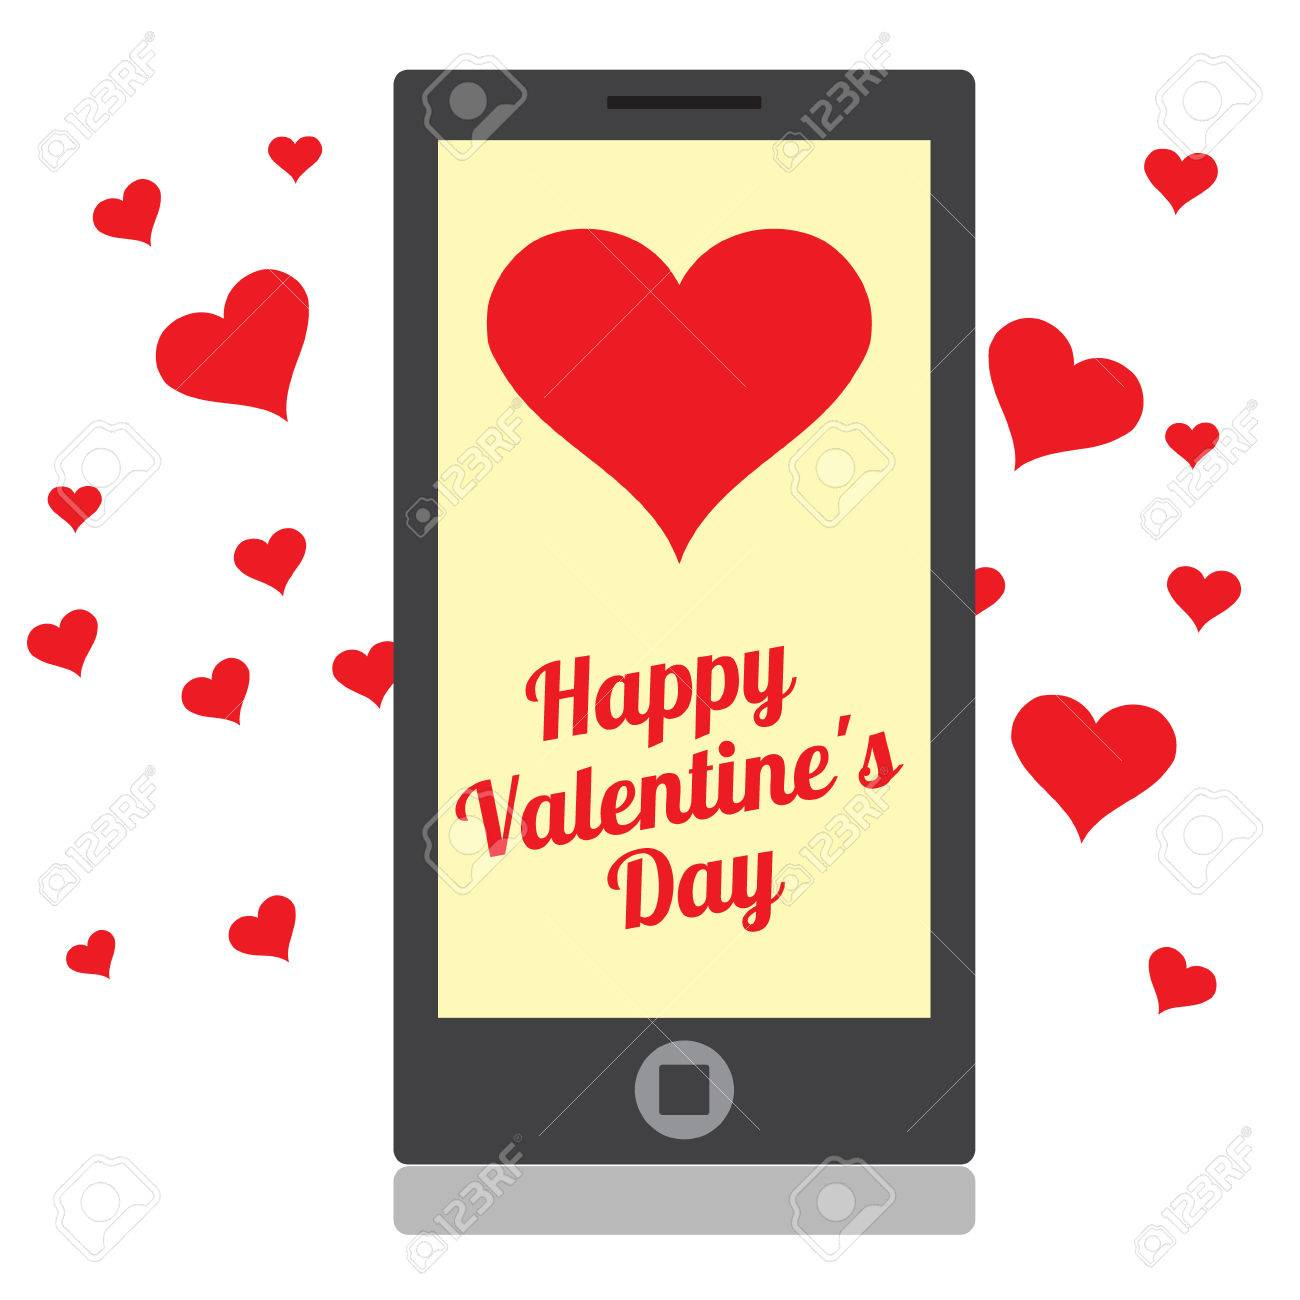 Drawing a mobile device with hearts and greetings for valentines drawing a mobile device with hearts and greetings for valentines day stock vector 53184750 m4hsunfo